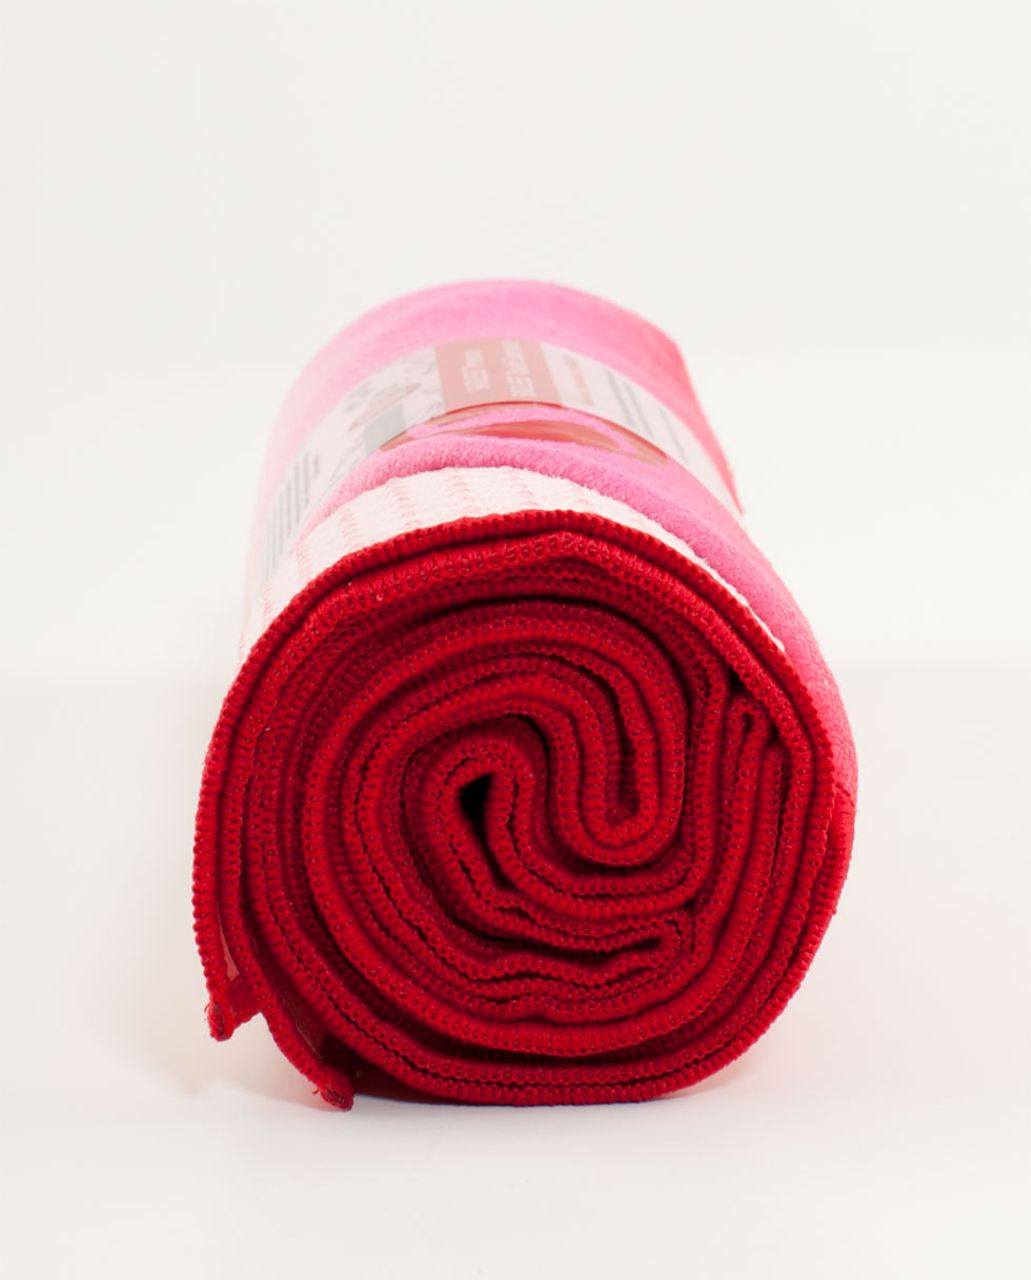 Lululemon Skidless Towel - Currant Smoky Rose Pig Pink Ombre Stripe